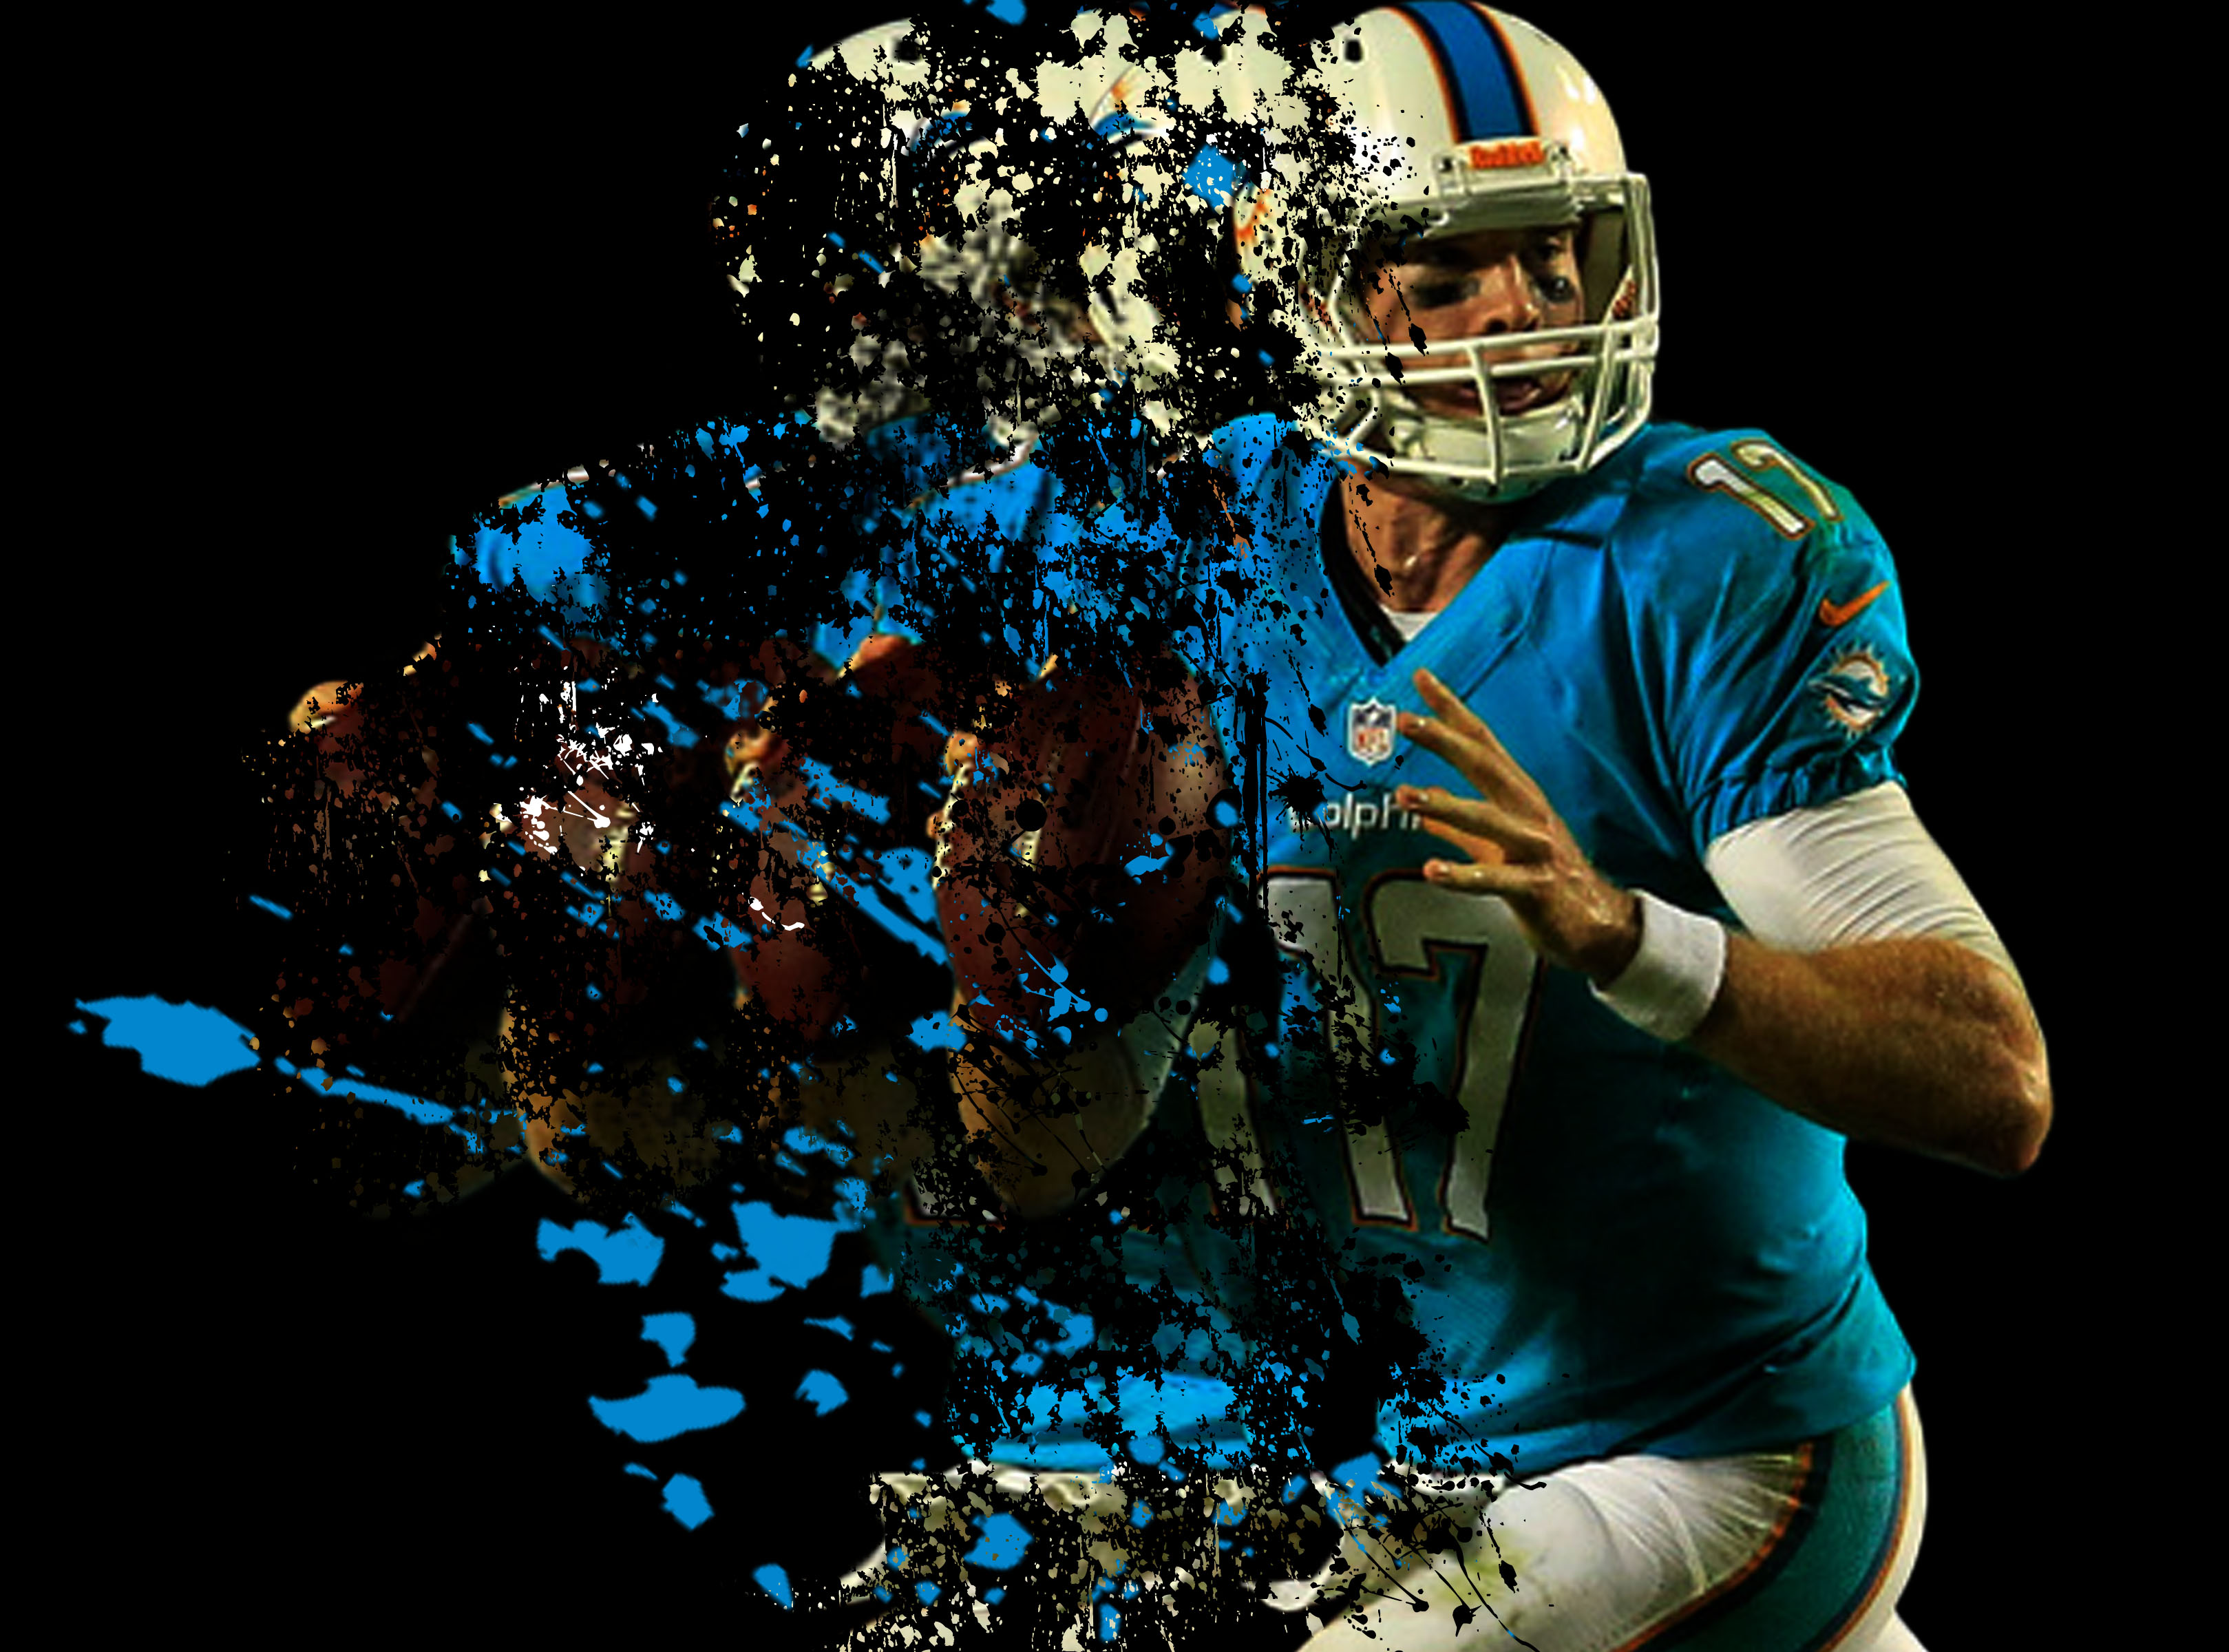 Ryan Tannehill HD images Player wallpapers 3238x2400